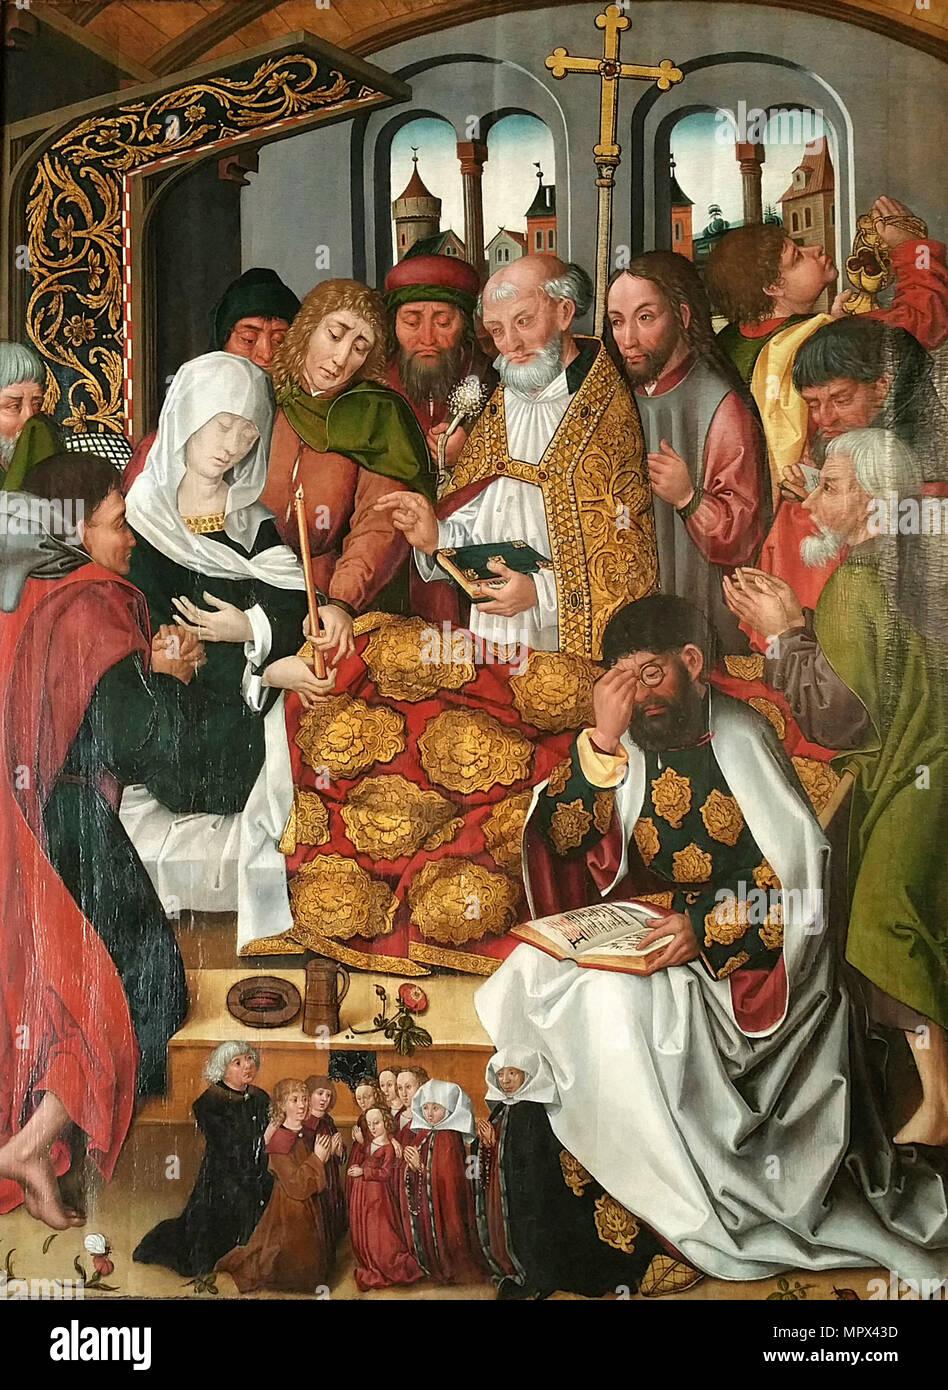 The Death of the Virgin, ca 1490-1510. - Stock Image